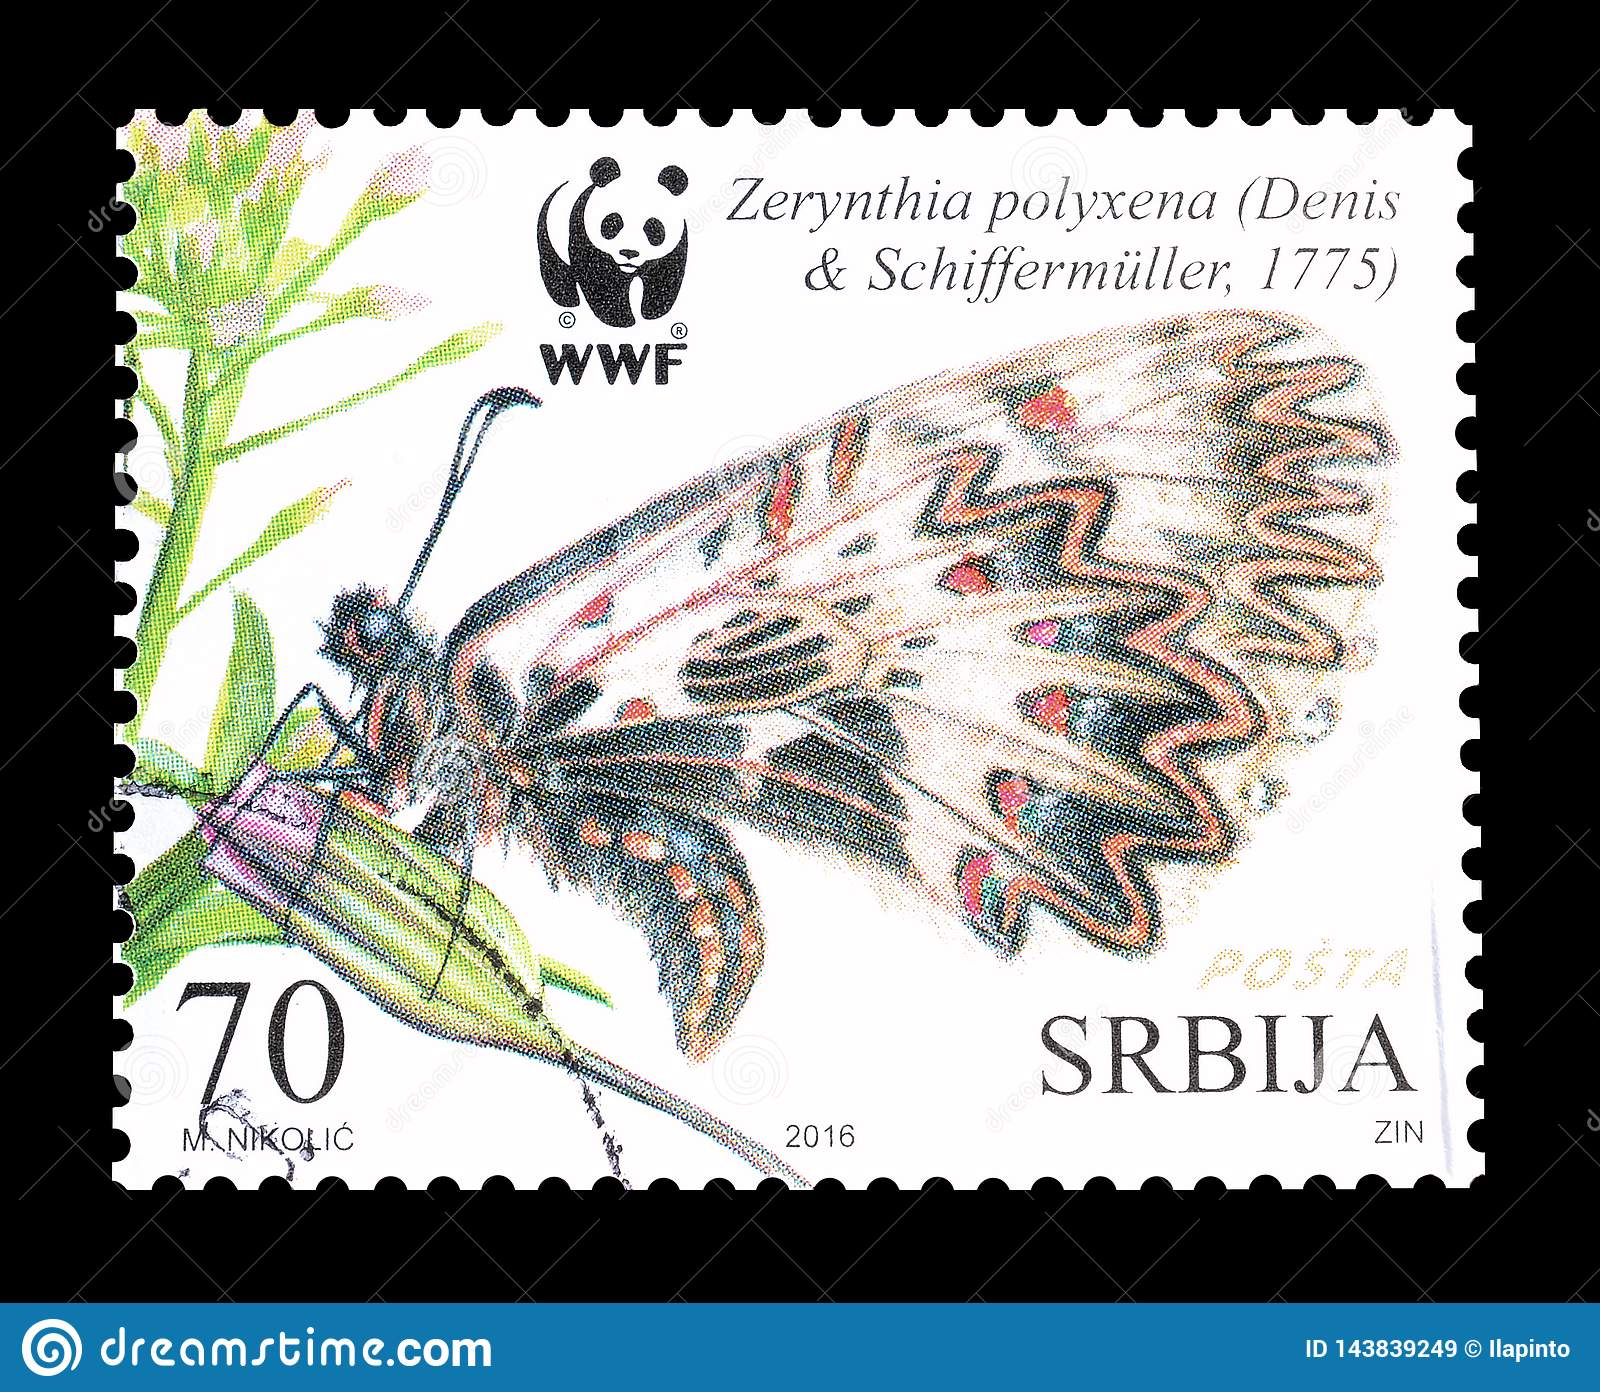 Serbia On Postage Stamps Editorial Stock Image Image Of